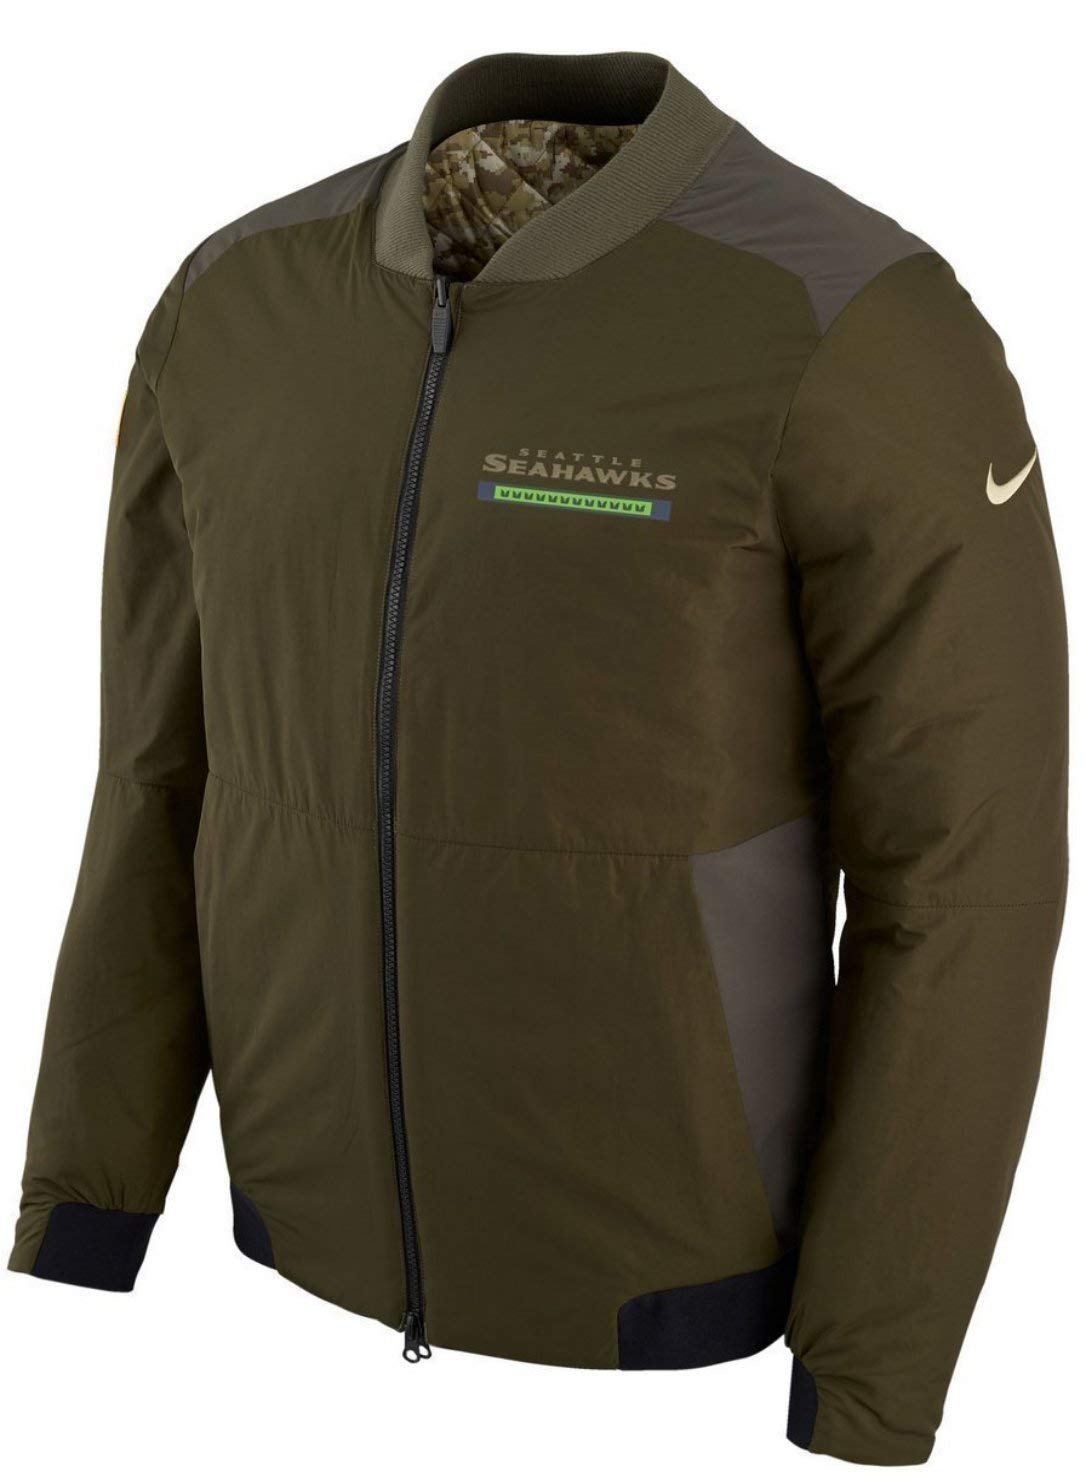 c6701e51af6 Amazon.com : seattle Seahawks Nike NFL Salute to Service Men's Reversible  Bomber Jacket : Sports & Outdoors